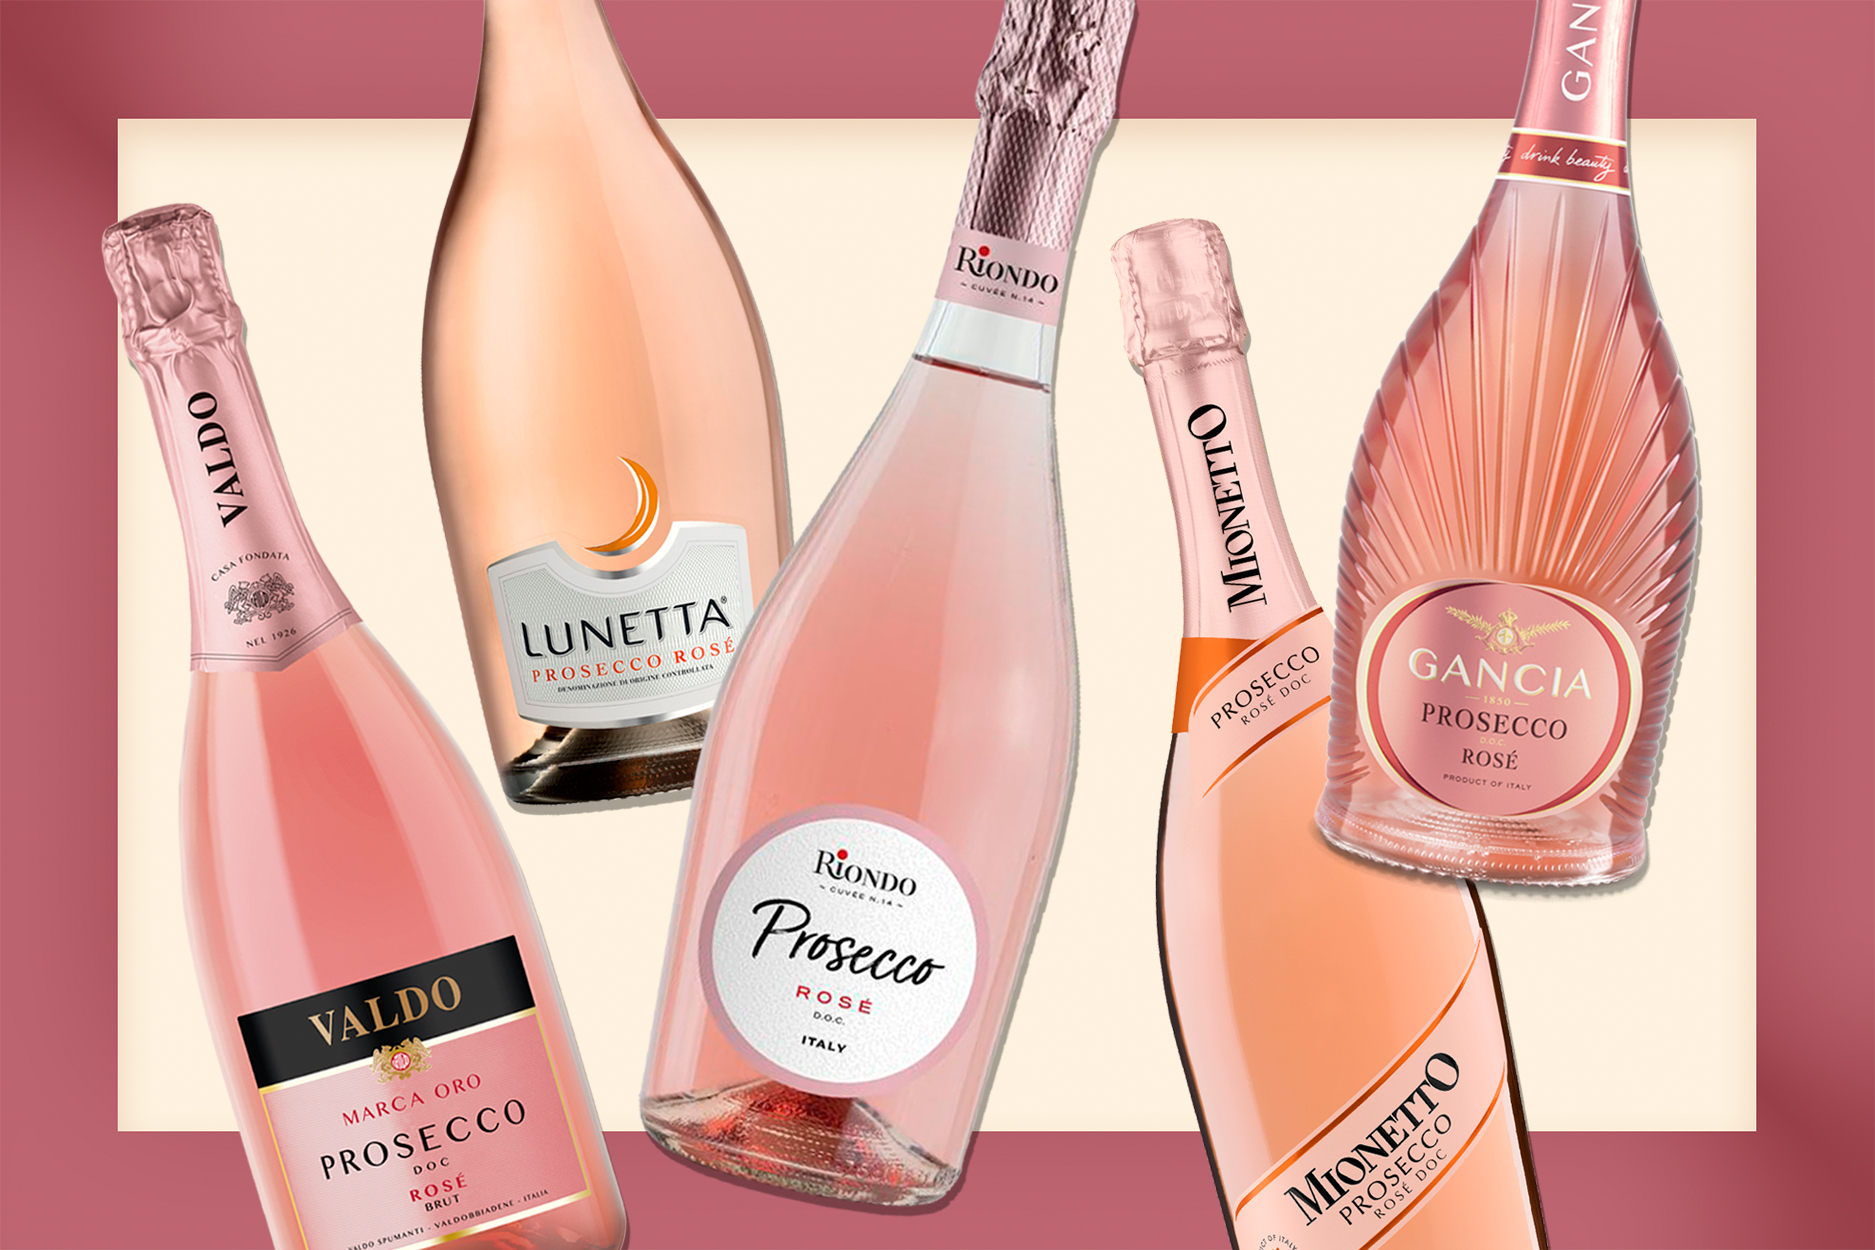 Bottles of Prosecco Rosé